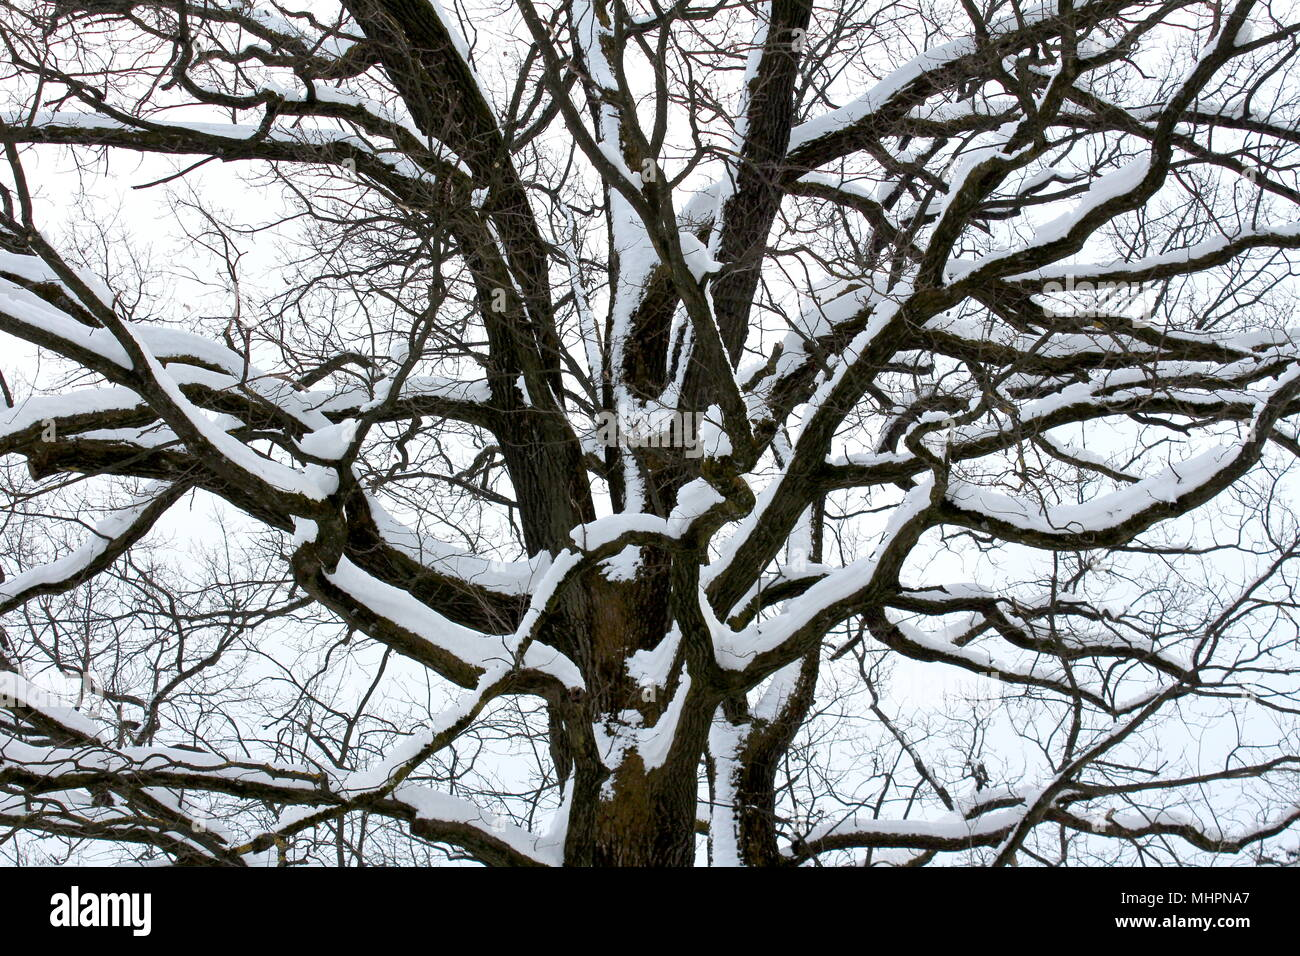 Mighty tree trunk with large branches completely covered in fresh winter snow on cold foggy winter day - Stock Image